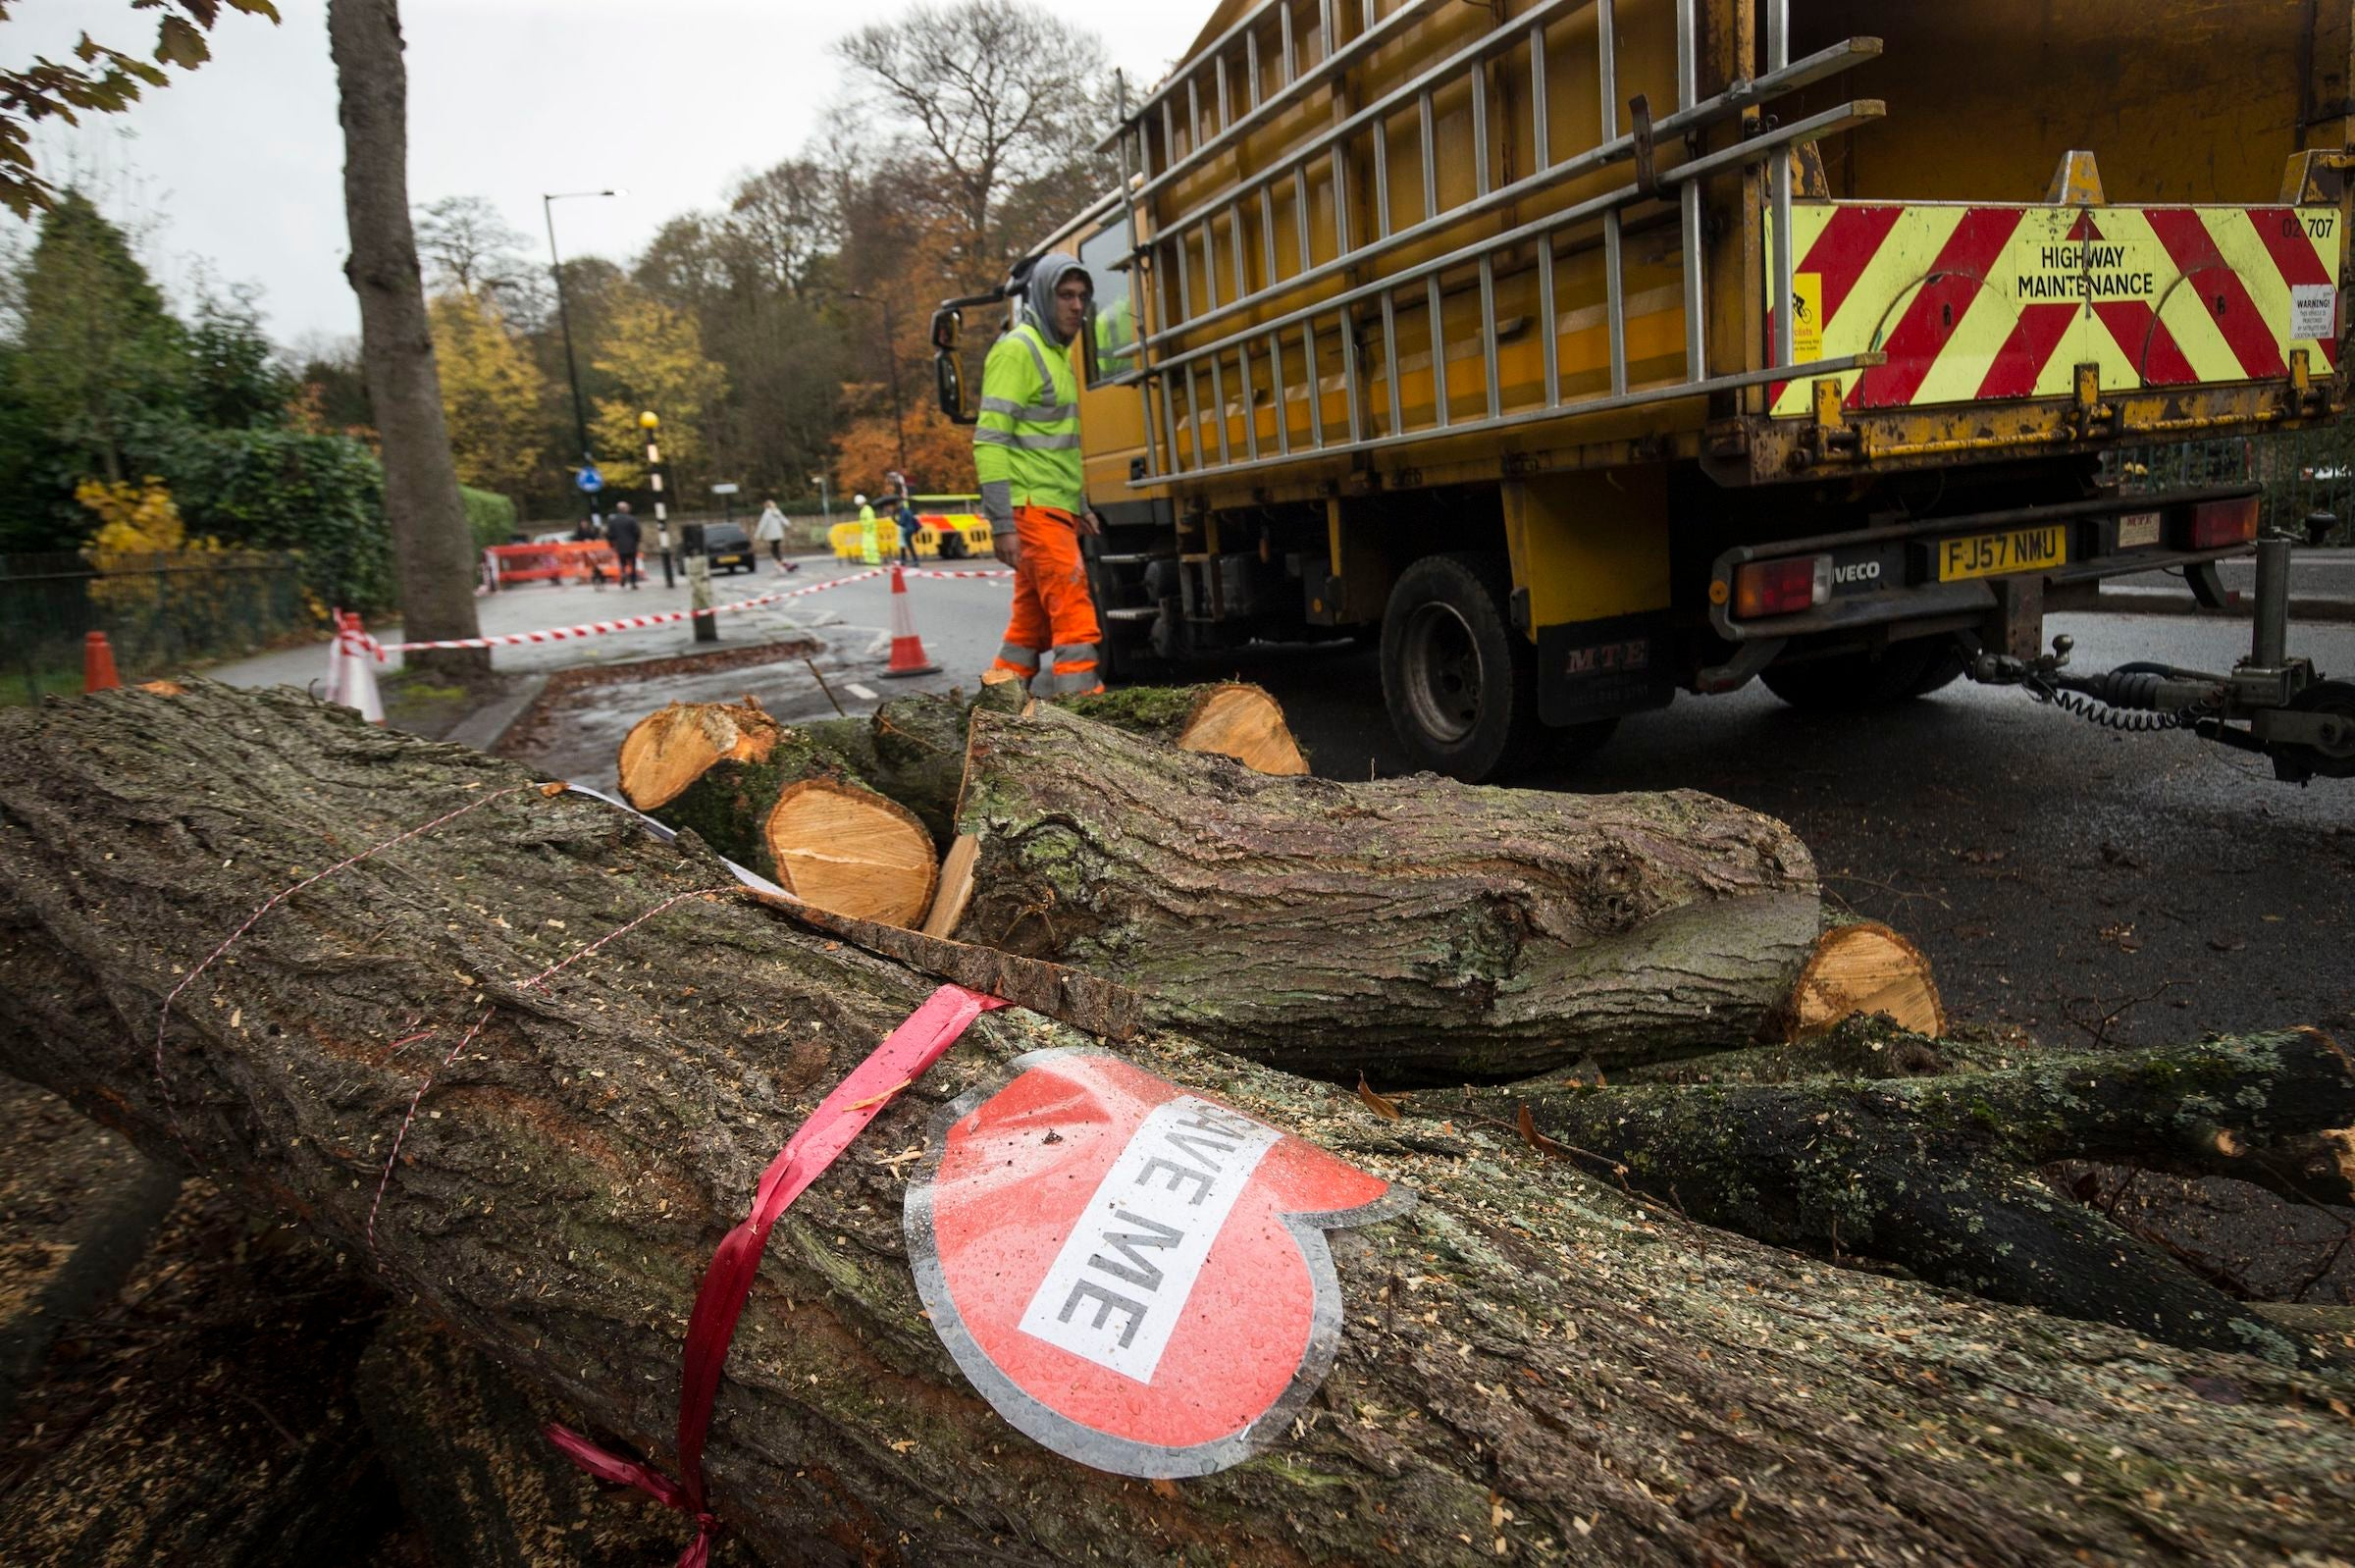 Sheffield's tree massacre: How locals battled to protect